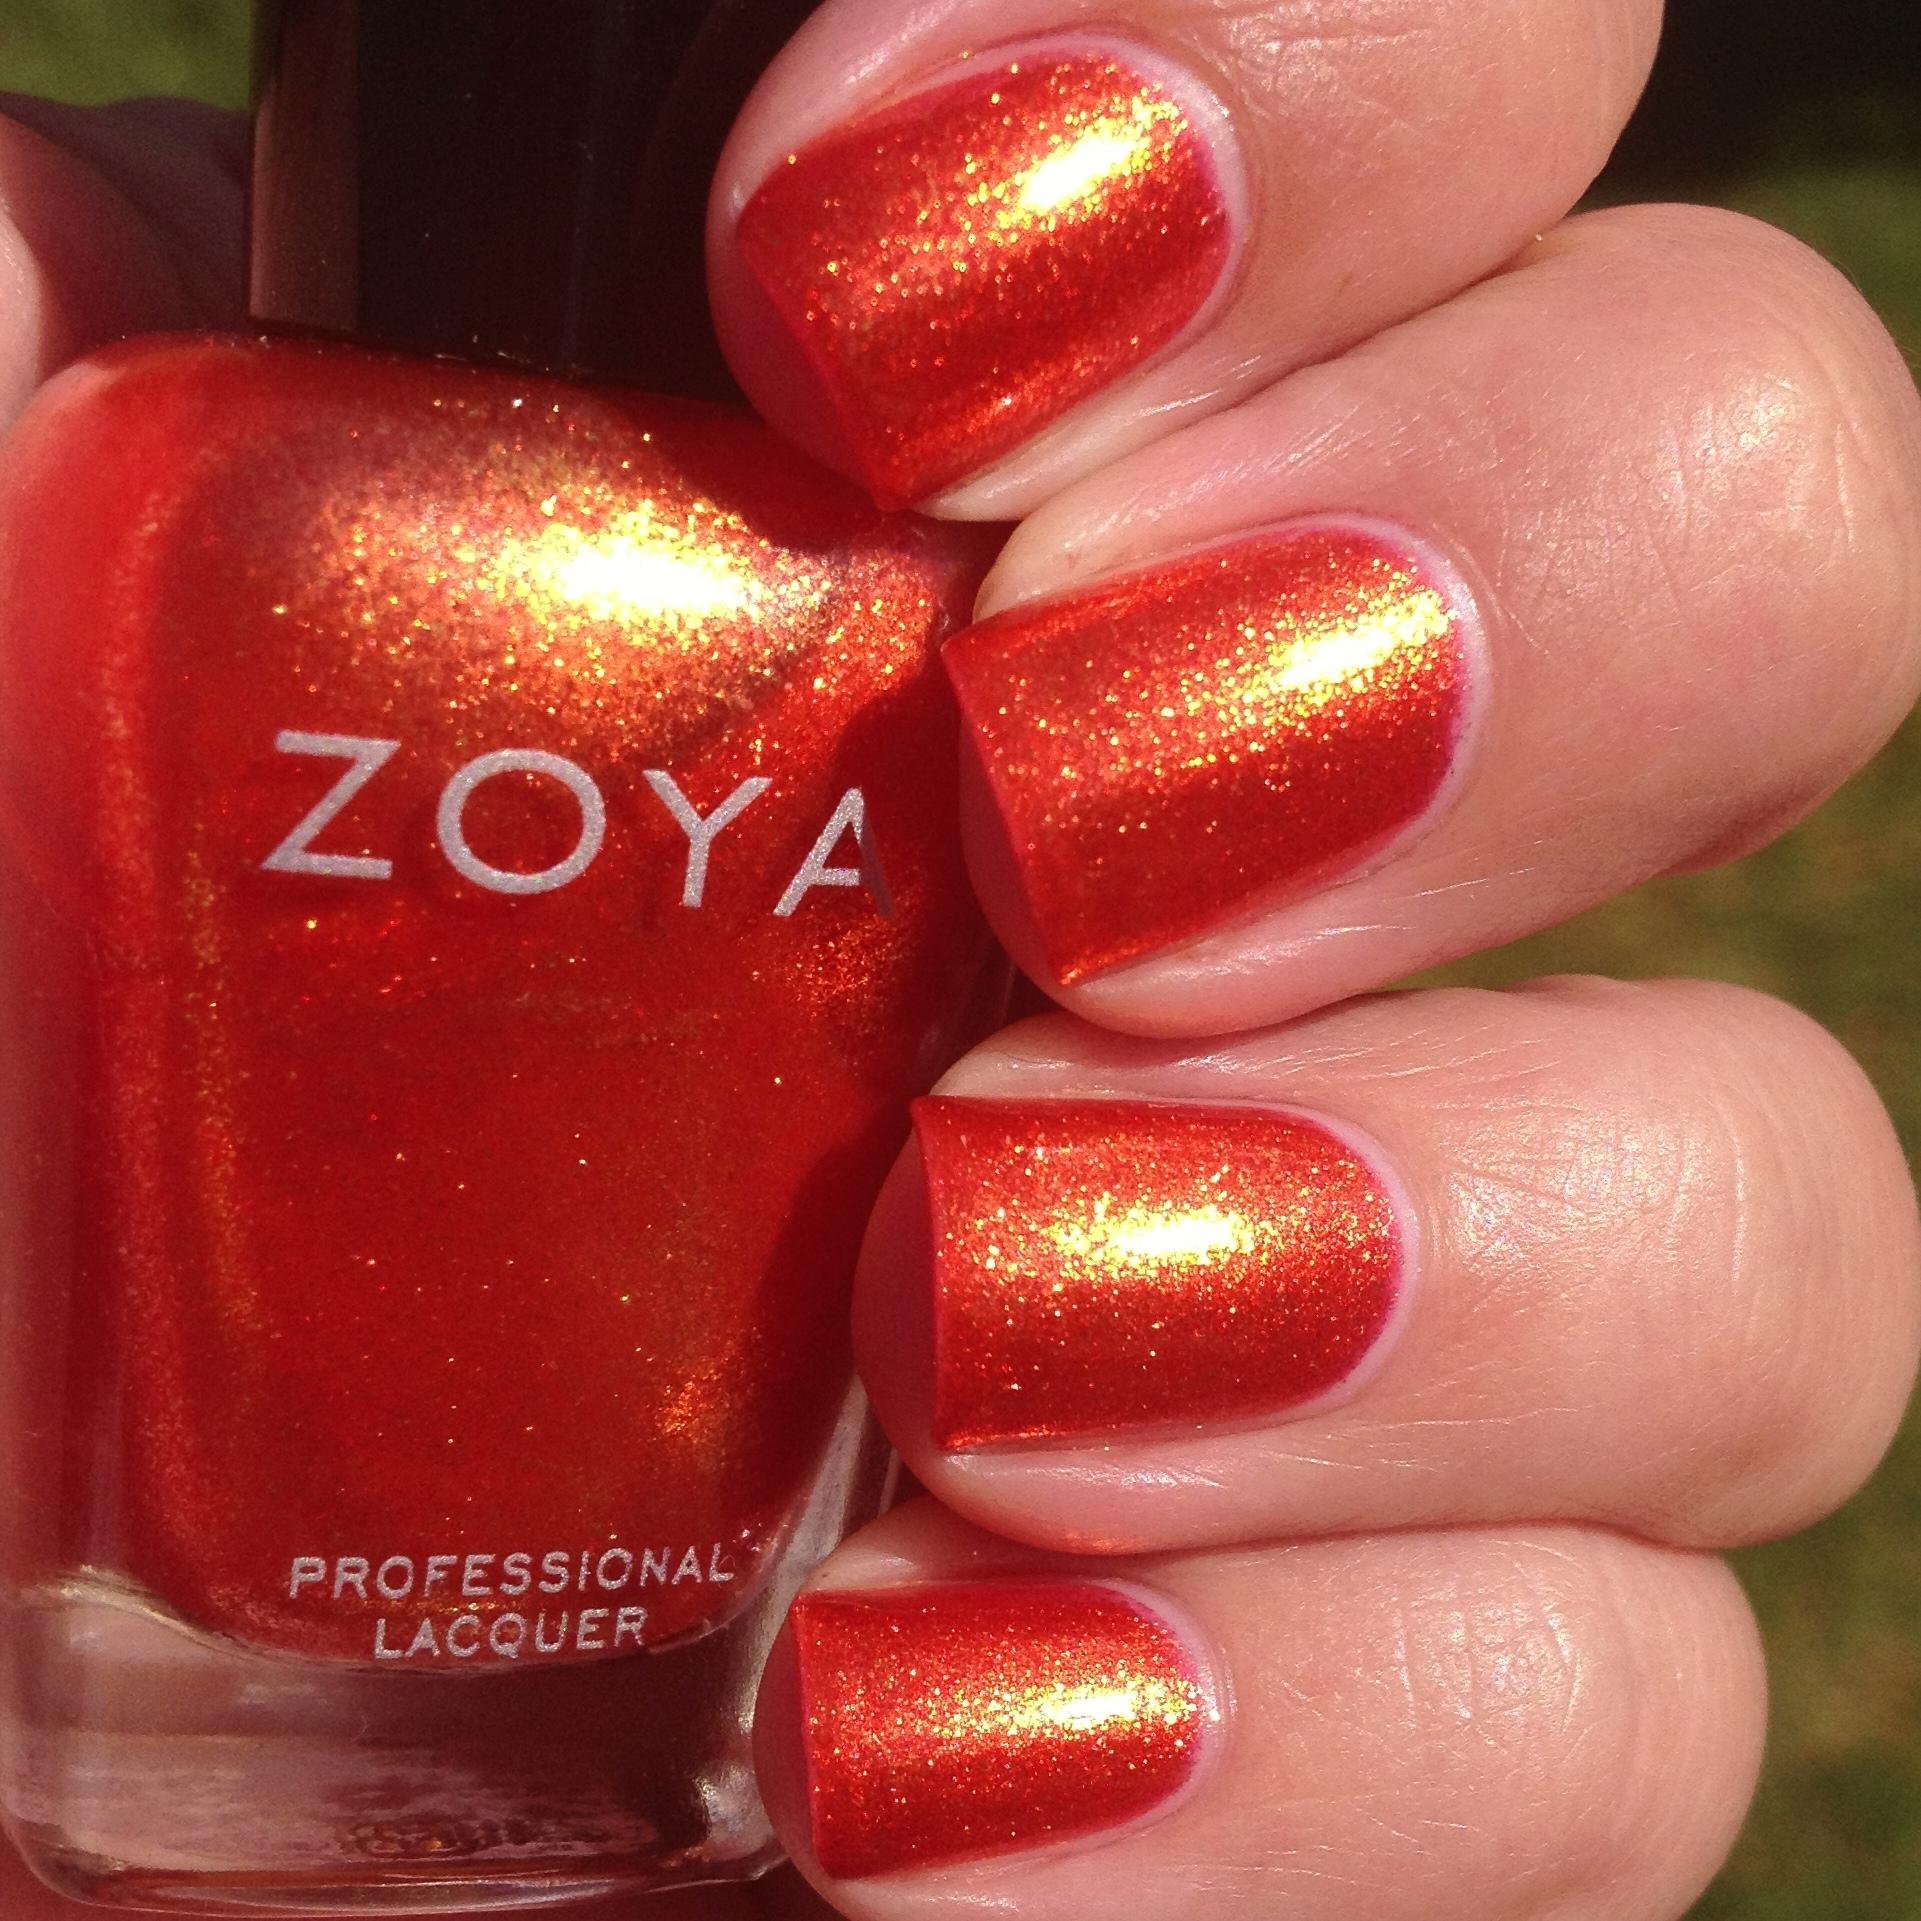 Zoya Irresistible Collection Swatches And Review Polish